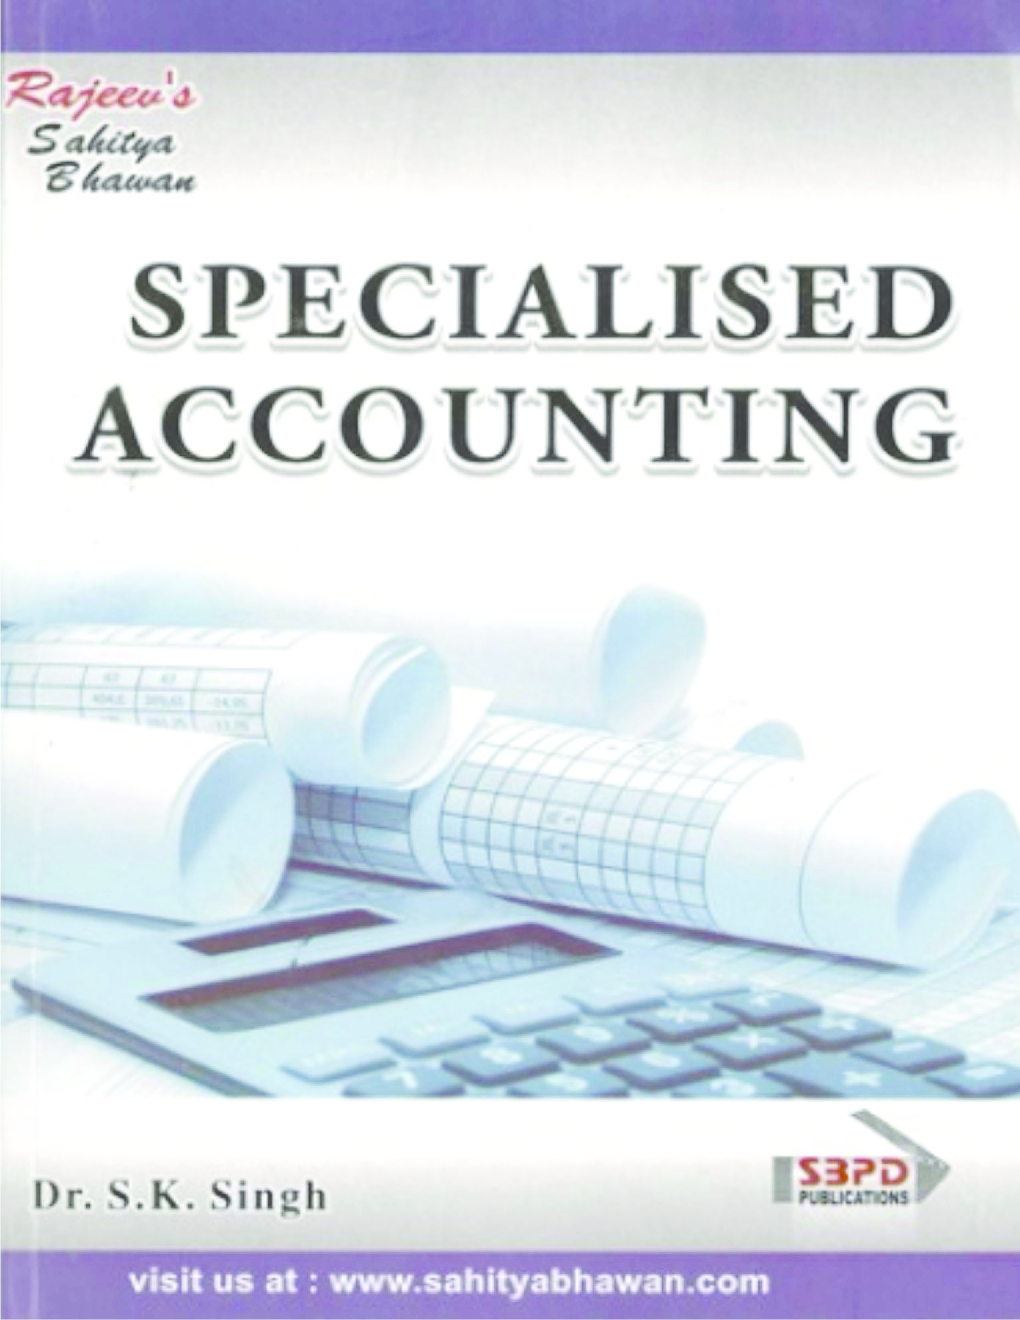 Specialised Accounting English Language - Page 1